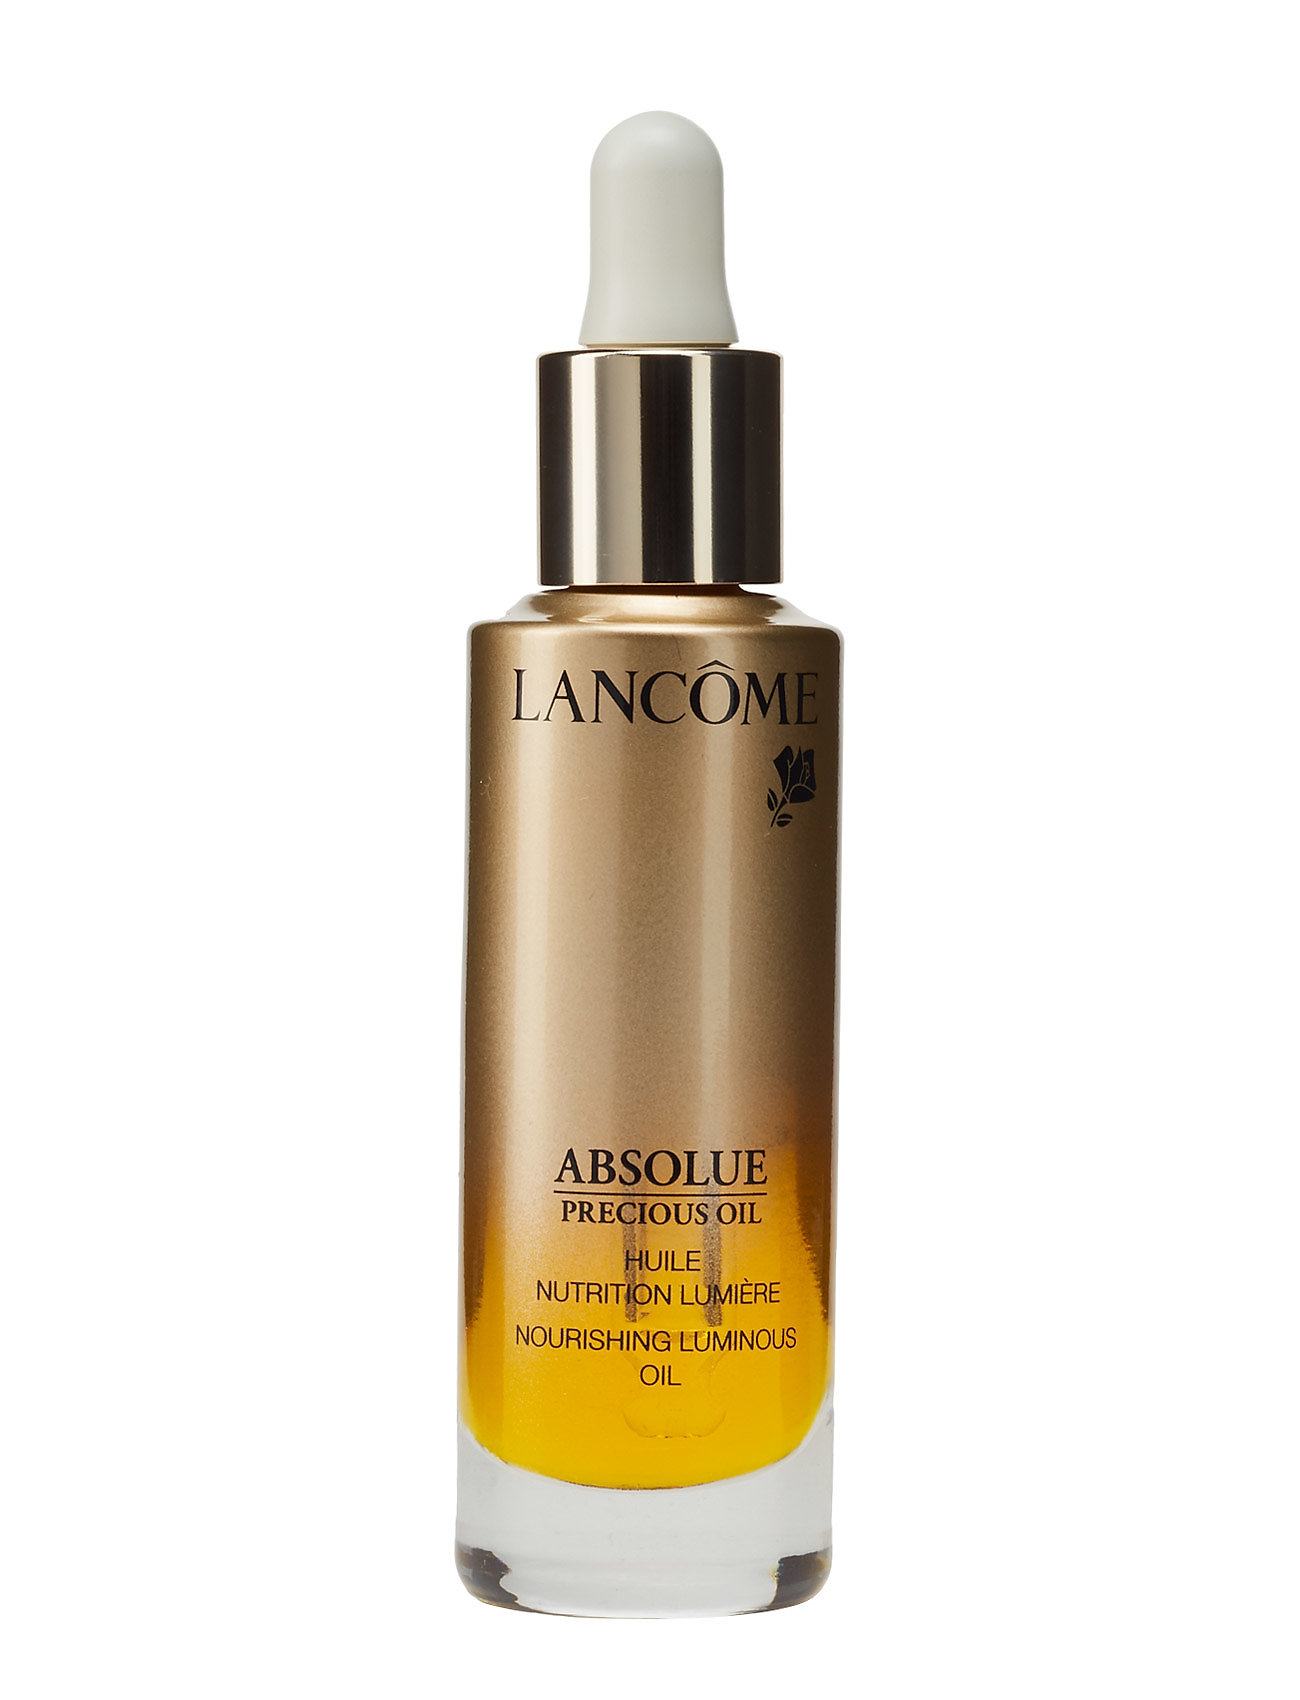 Image of Absolue Oil 30 Ml (2692778885)